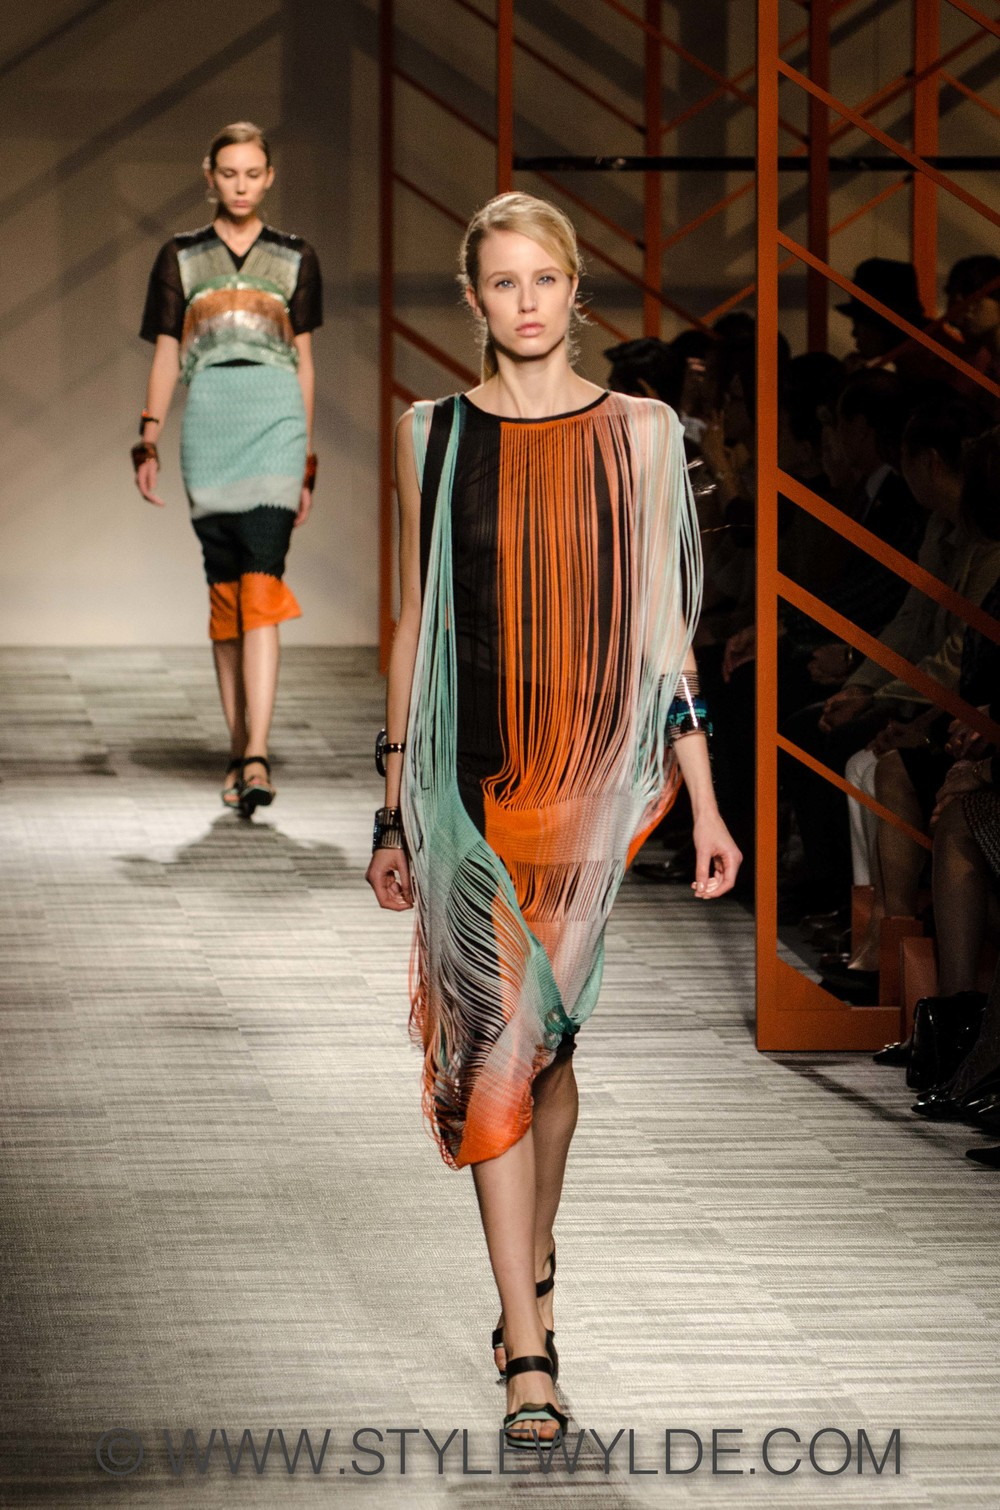 STYLEWYLDE_Missoni_SS2014 (1 of 1)-21.jpg